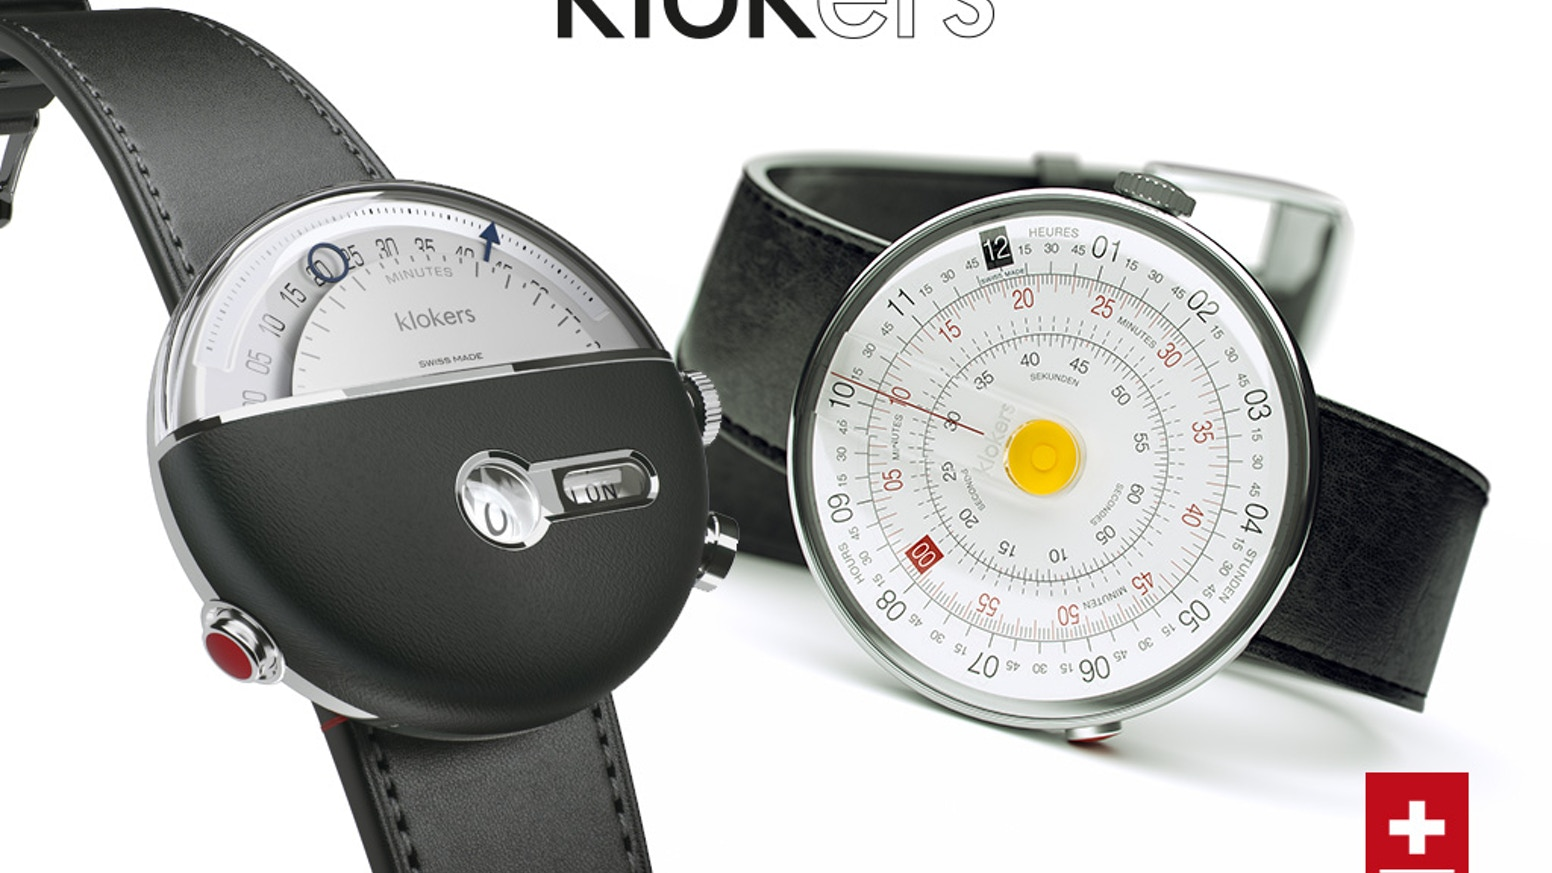 klokers is a premium fashion watch & accessory brand enabling customizable style to match life's everyday moments.